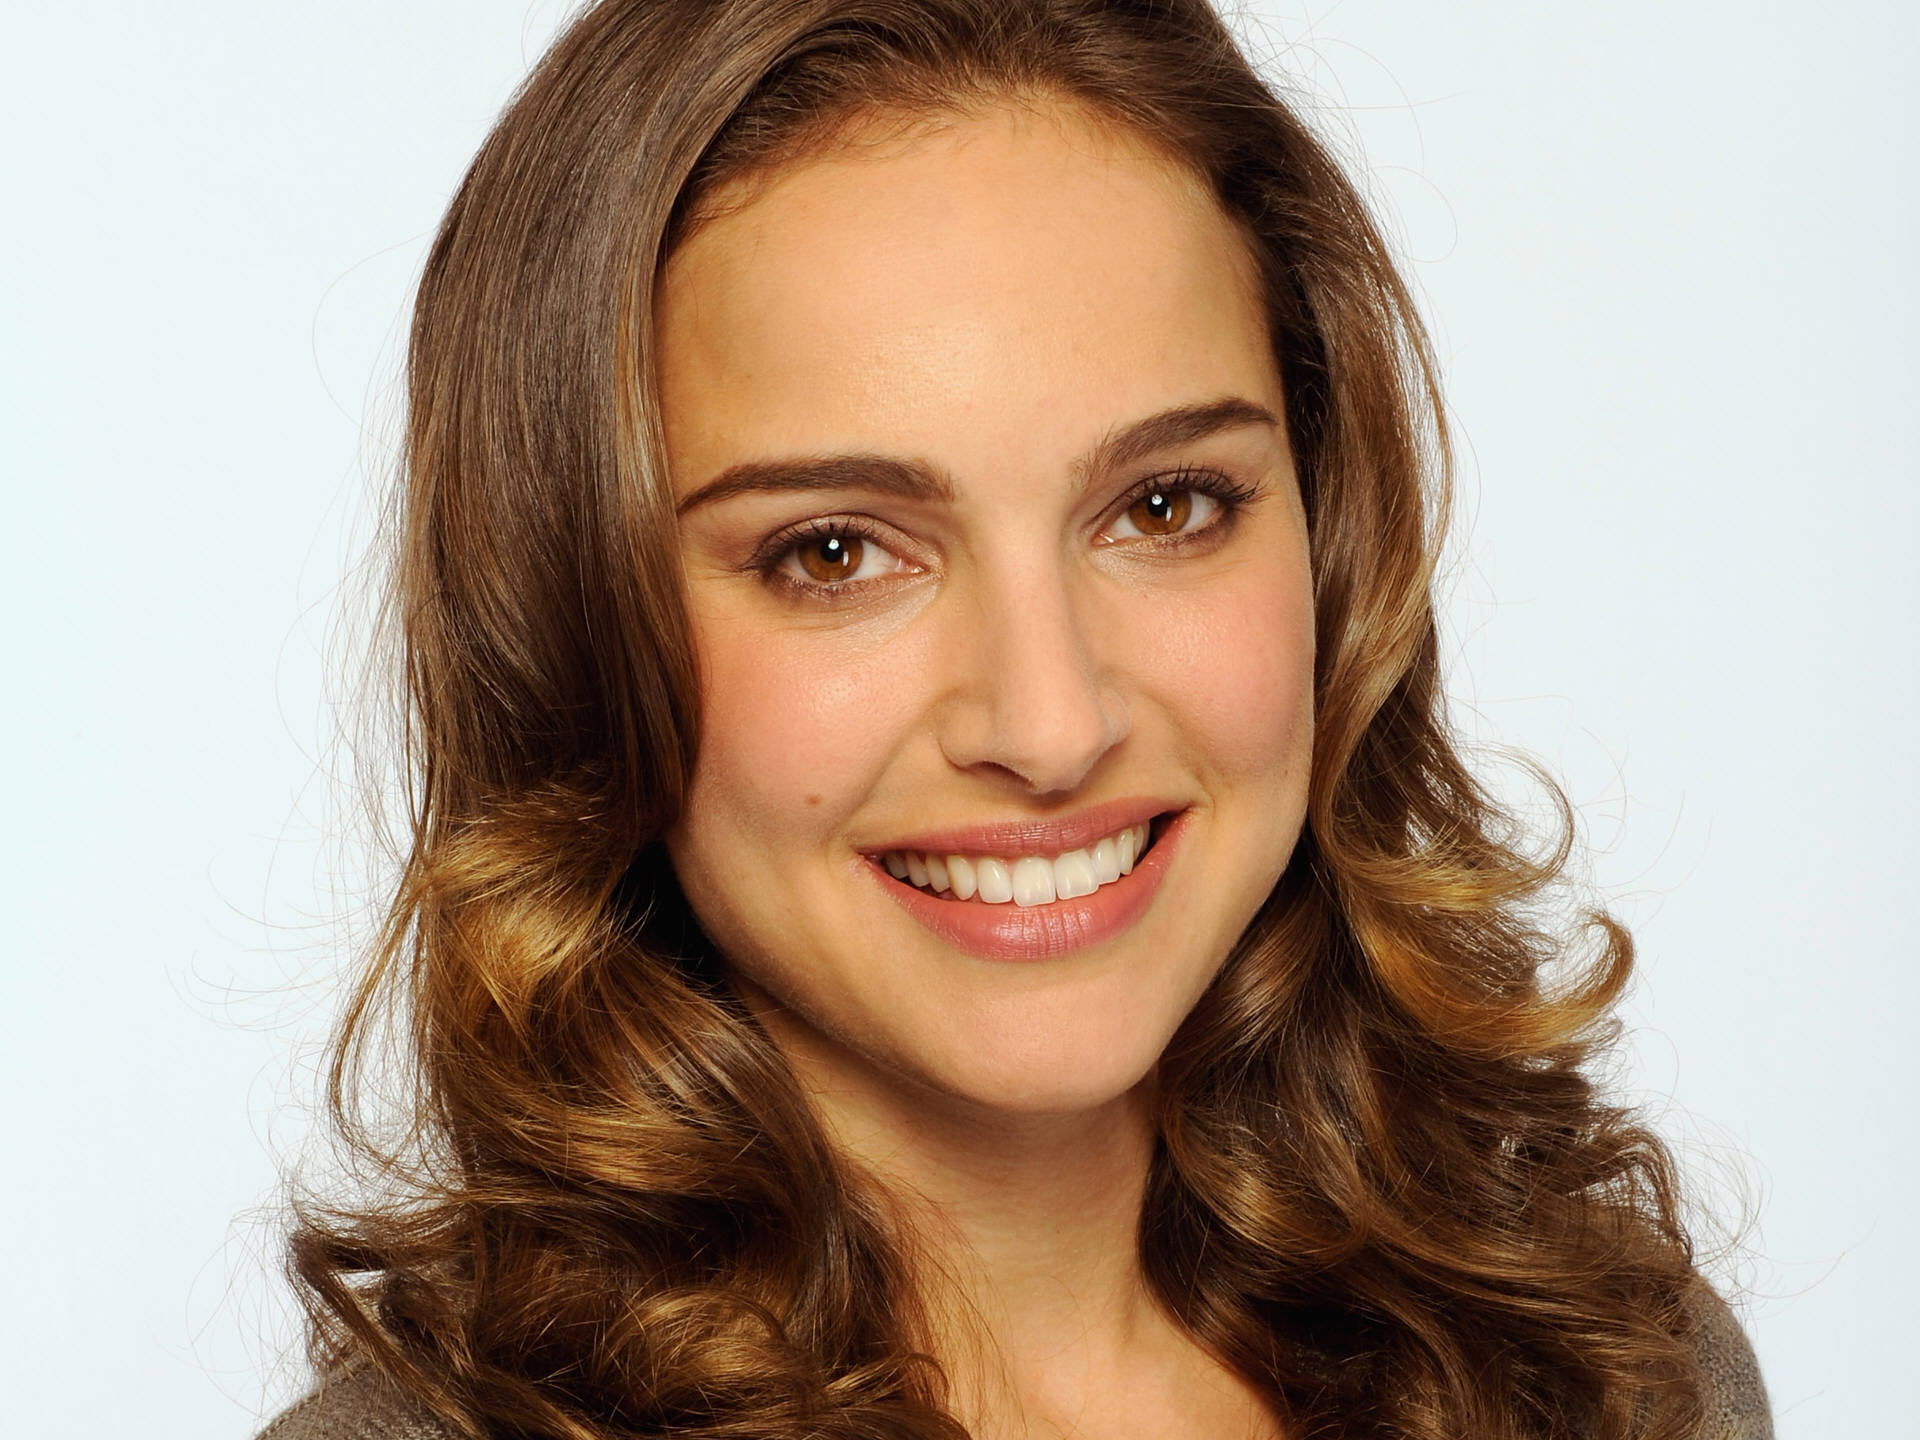 Natalie Portman buys into vegan shoe business